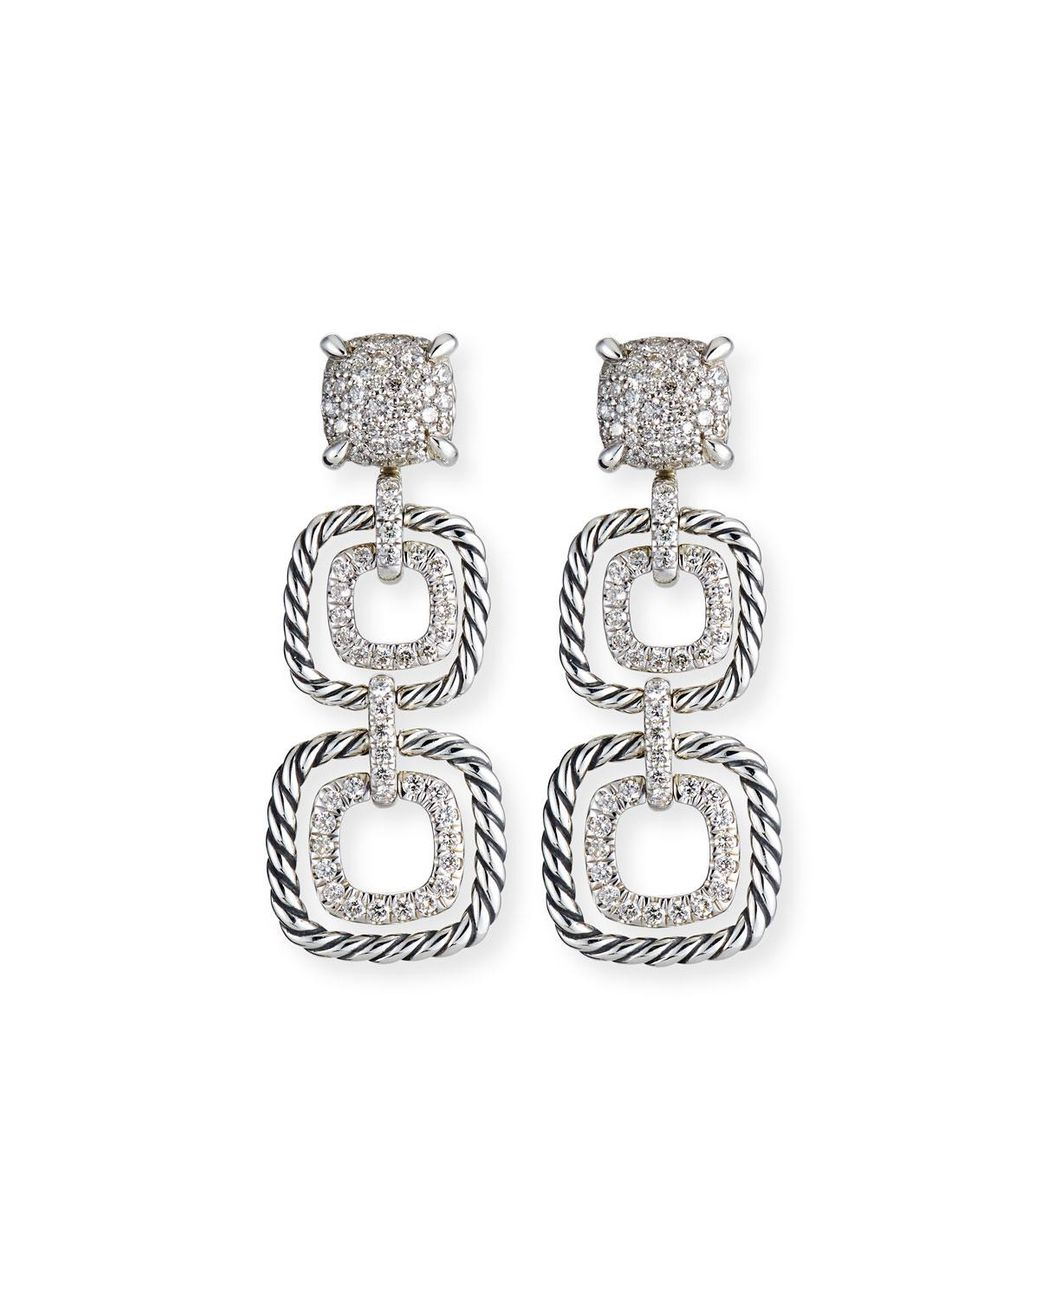 New DY Chatelaine Sterling Silver Hardware With Cable Huggie Hoops Drop Earrings